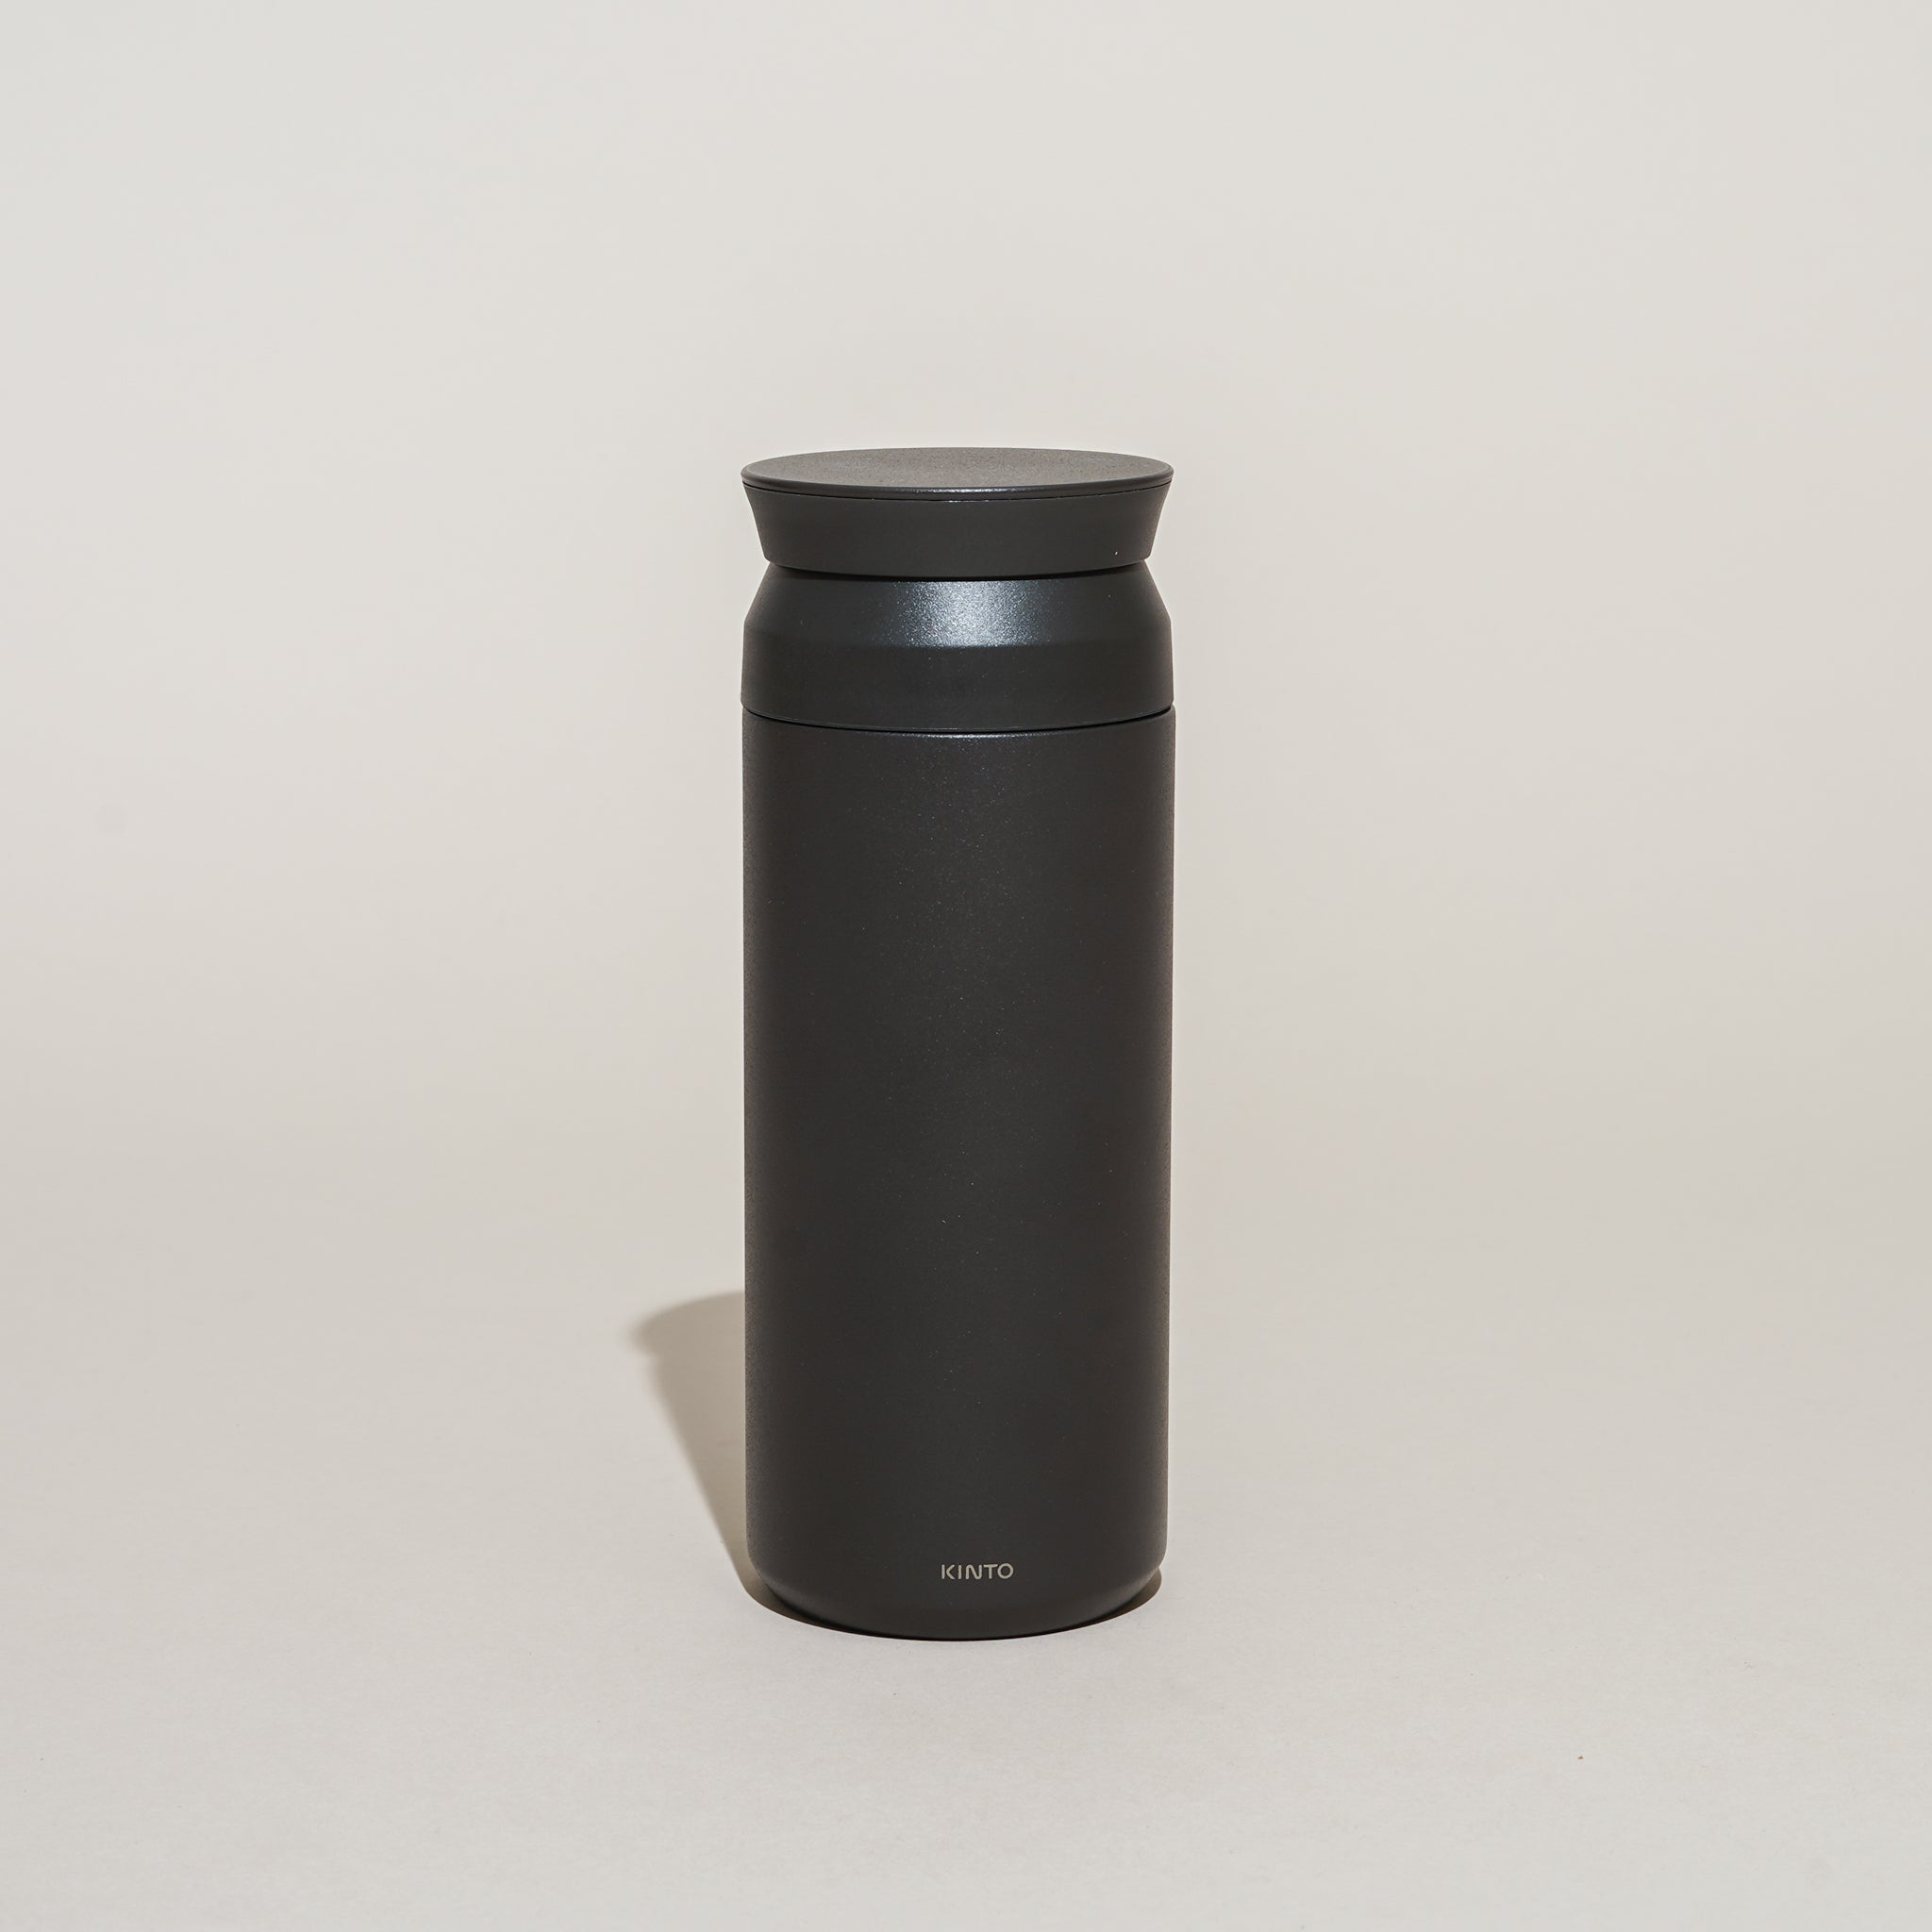 Kinto Travel Tumbler (500ml) from Commonplace design shop.